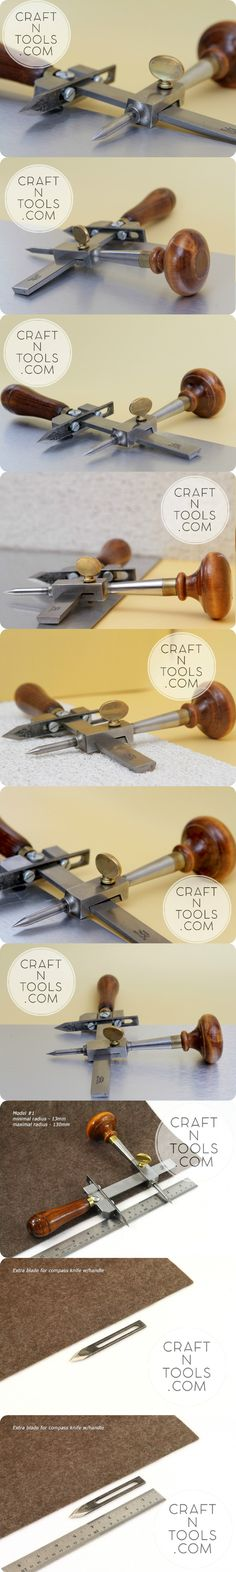 This Pin was discovered by CraftnTools. Discover (and save!) your own Pins on Pinterest.